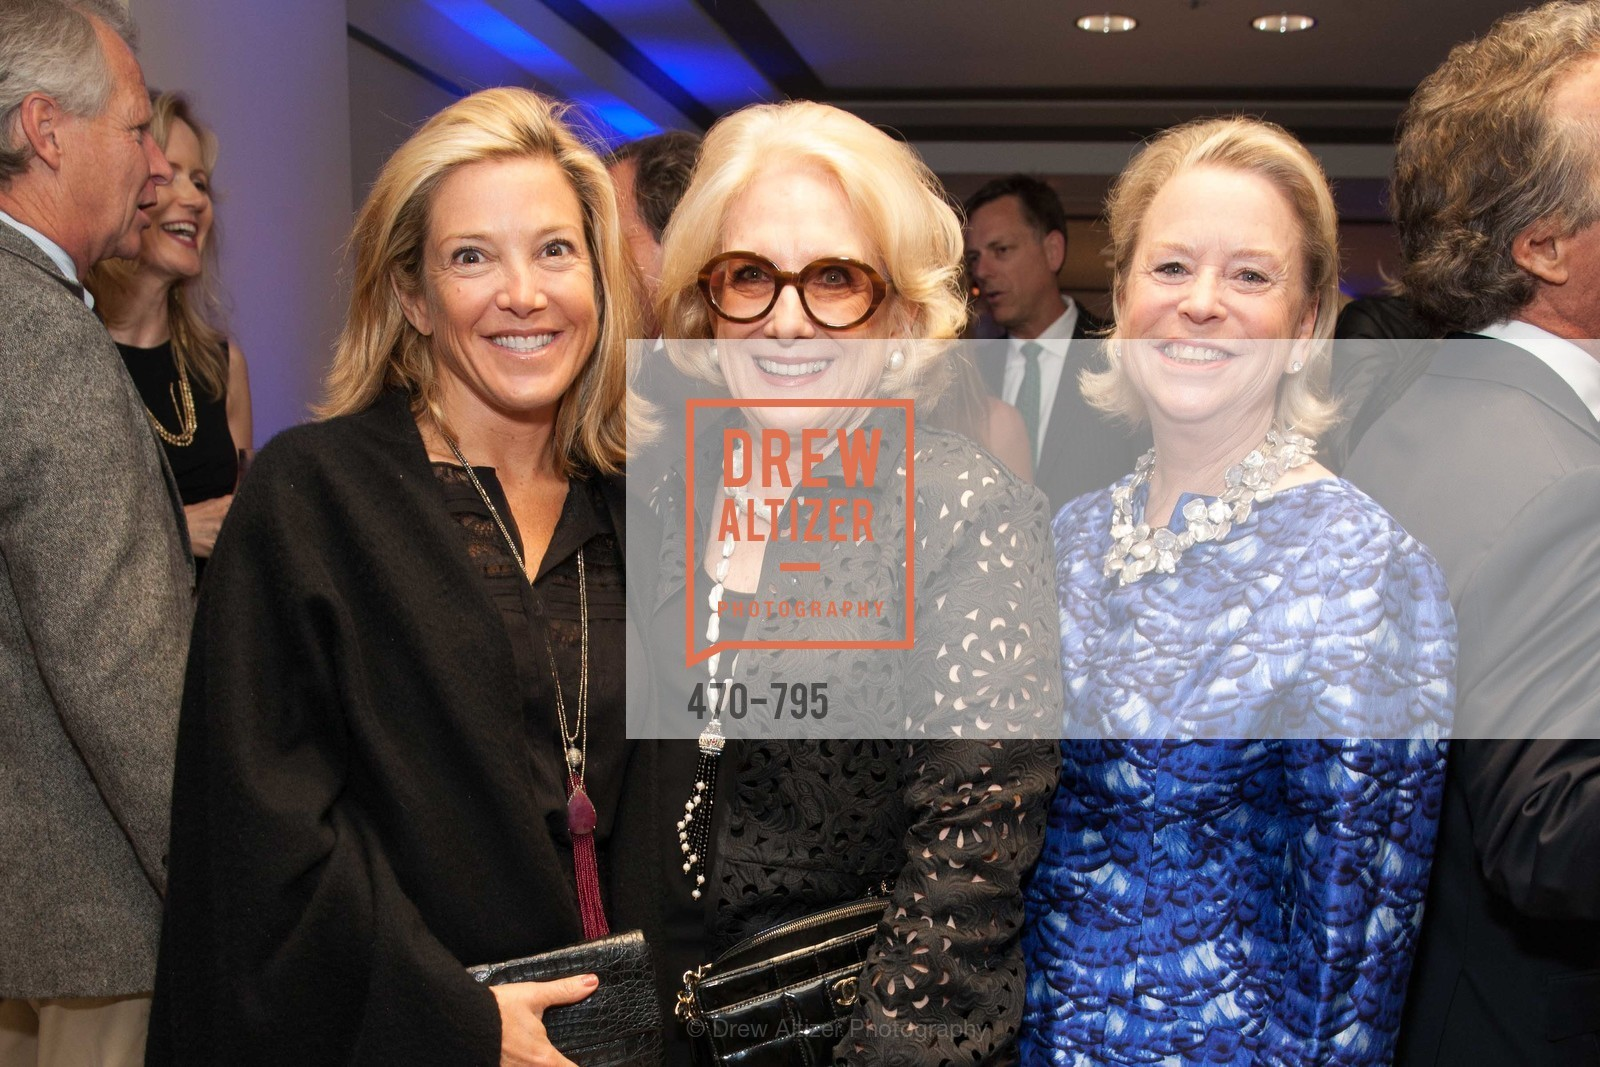 Kathryn Lasater, Cynthia Molstad, Connie Hooker, COMPASS FAMILY SERVICES Annual Spring Benefit:  Every Family Needs A Home, US, April 23rd, 2015